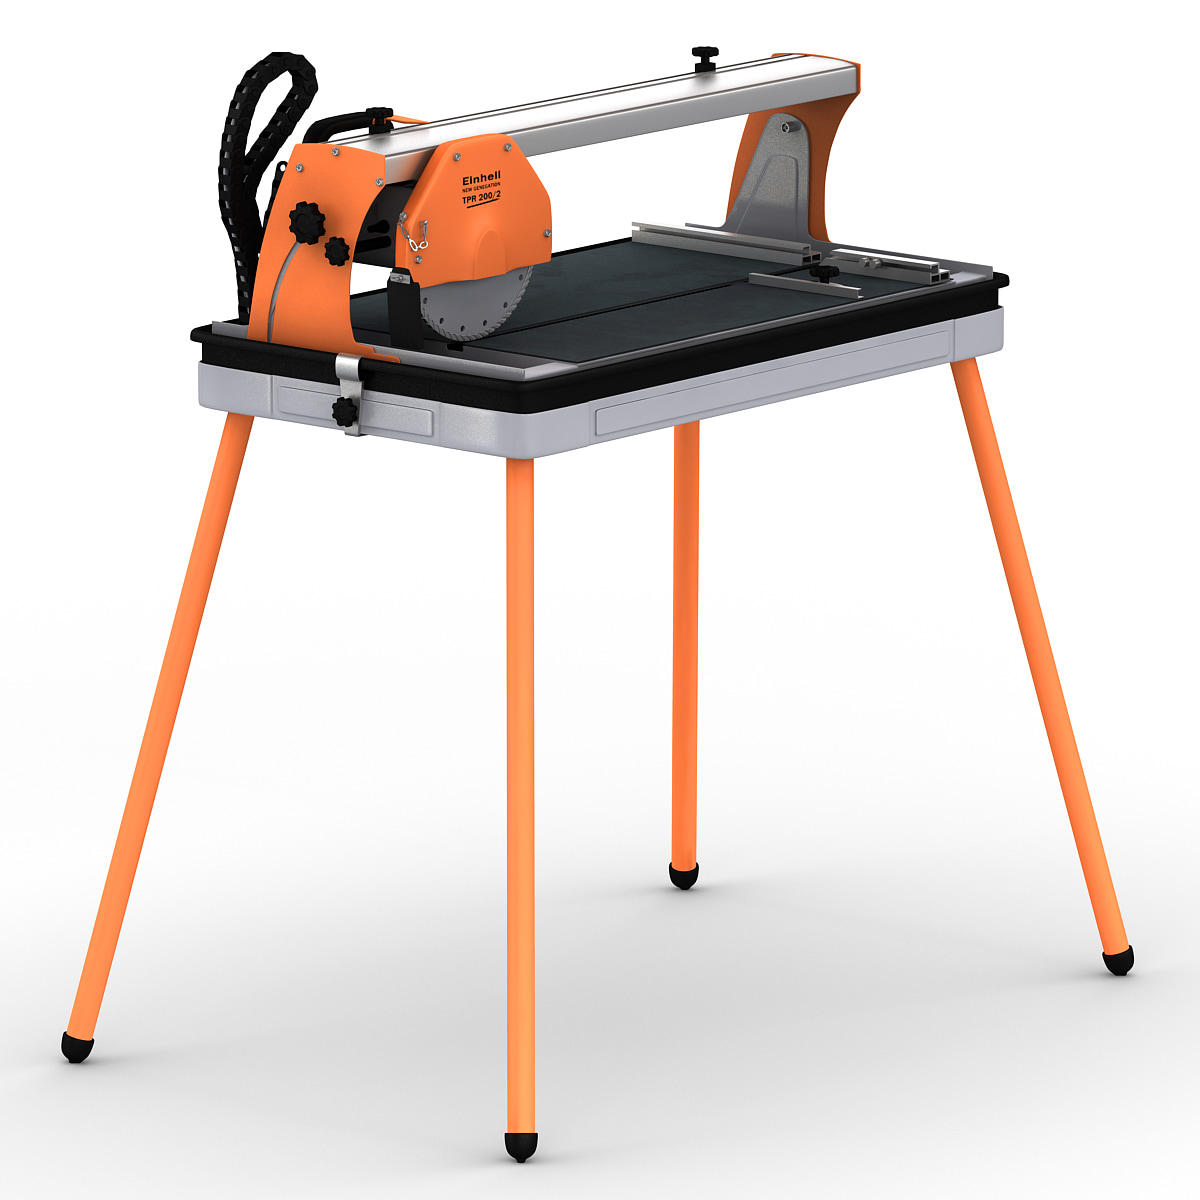 Electric_Tile_Cutter_001.jpg